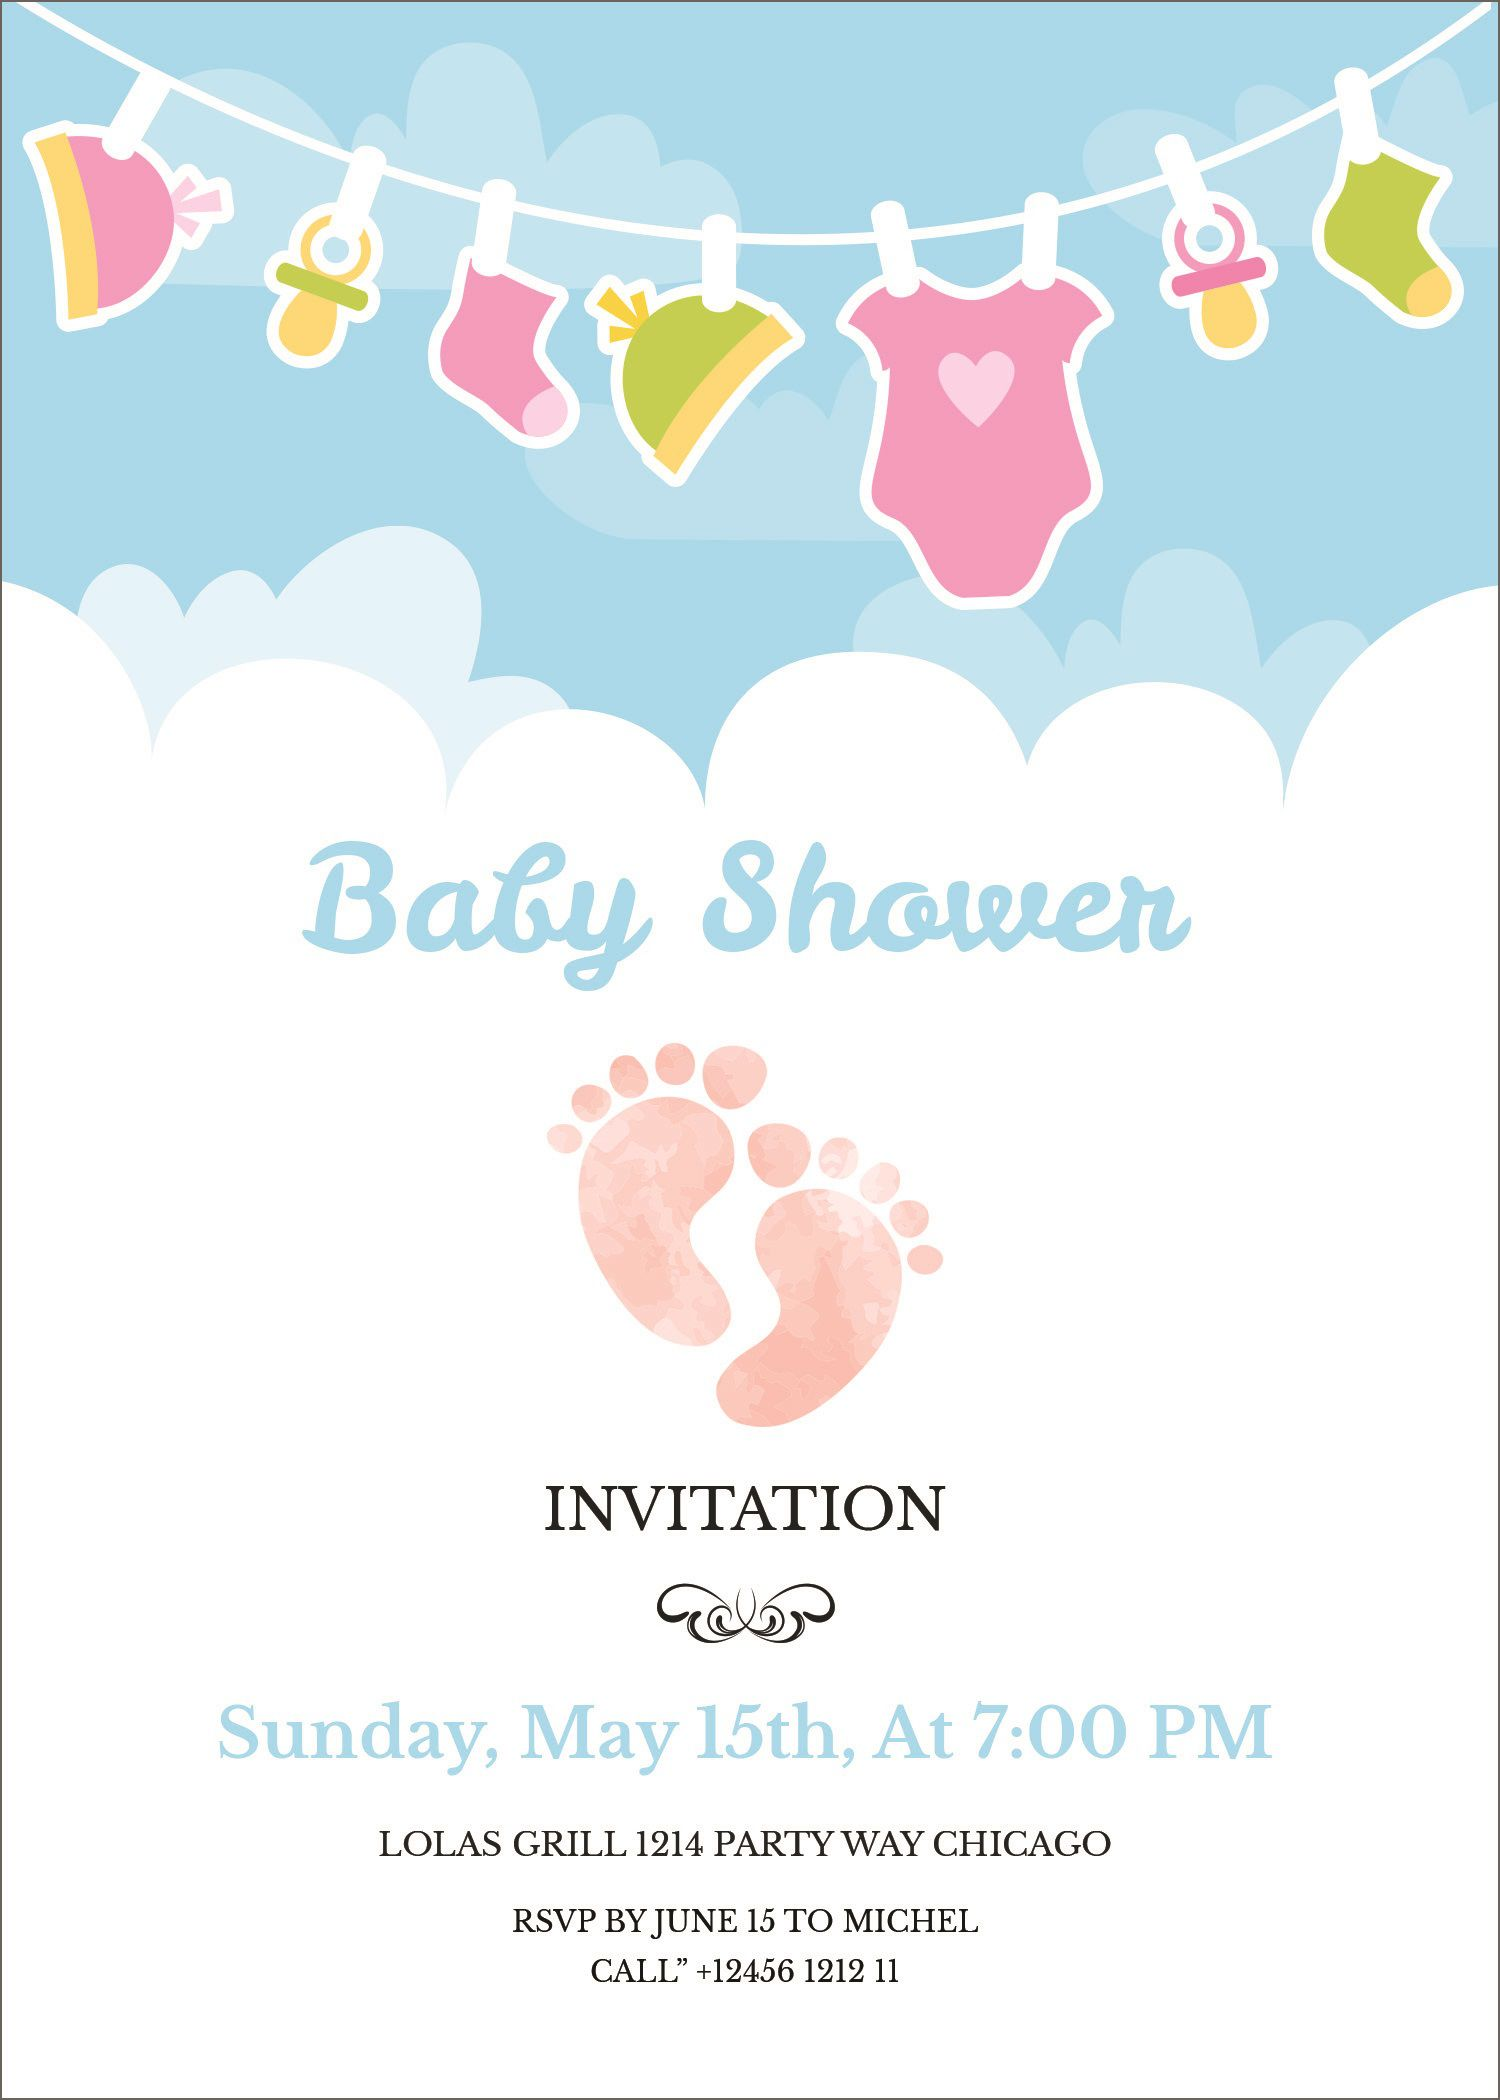 004 Phenomenal Baby Shower Card Design Free Highest Clarity  Template Microsoft Word Boy DownloadFull